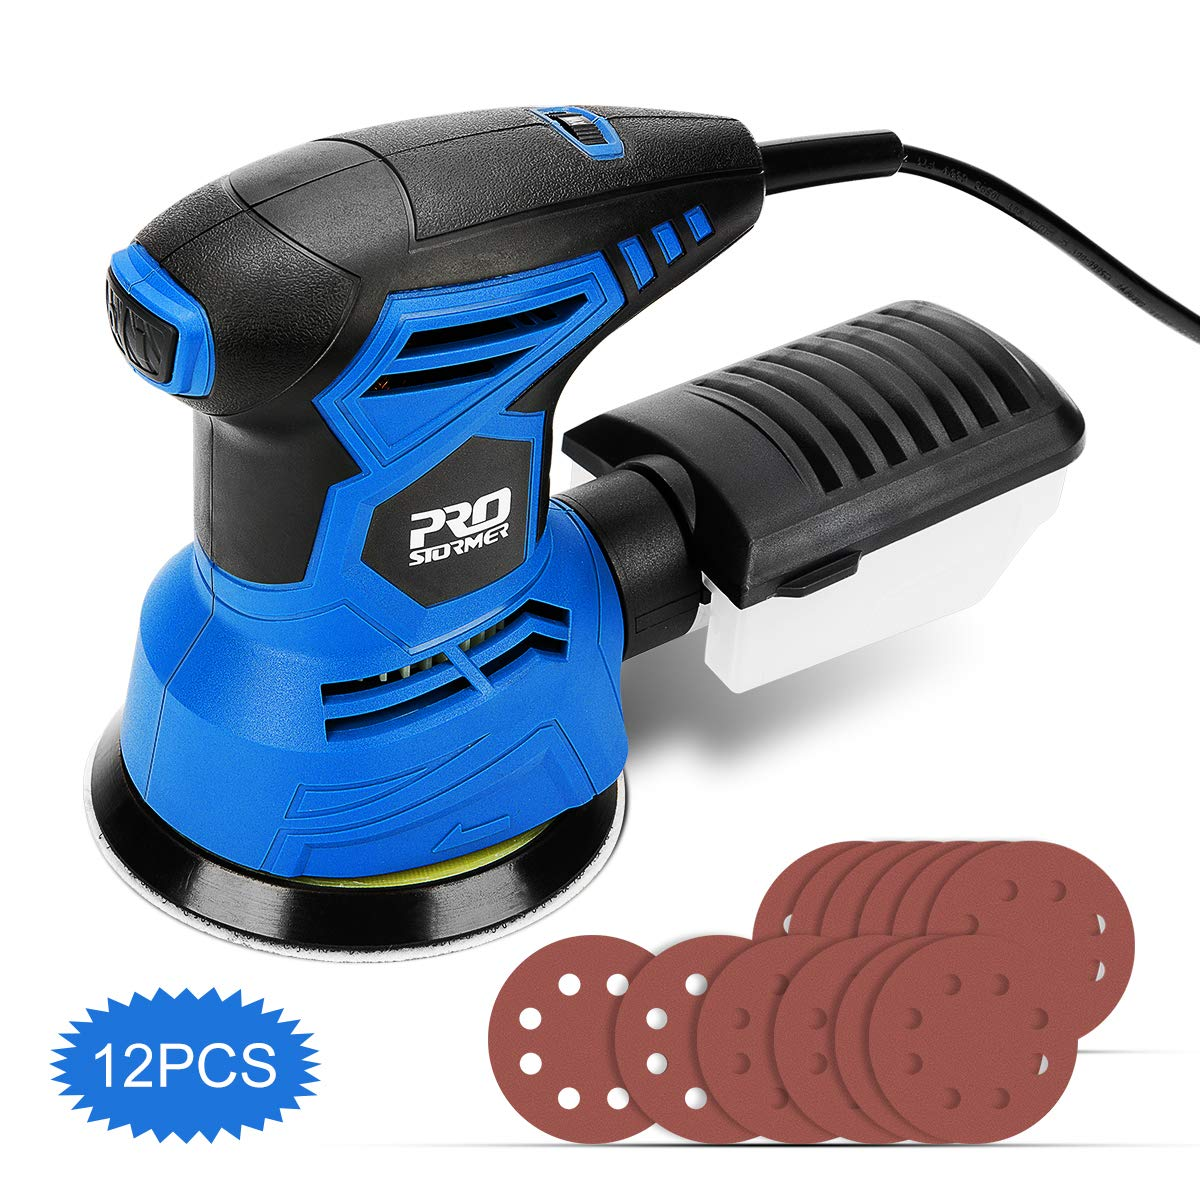 5-Inch Random Orbit Sander with 7 Variable Speed, PROSTORMER 13000RPM Electric Orbital Sander with 12pcs Sander Papers and Effective Dust Collector - Ideal for DIY & Woodworking by Prostormer